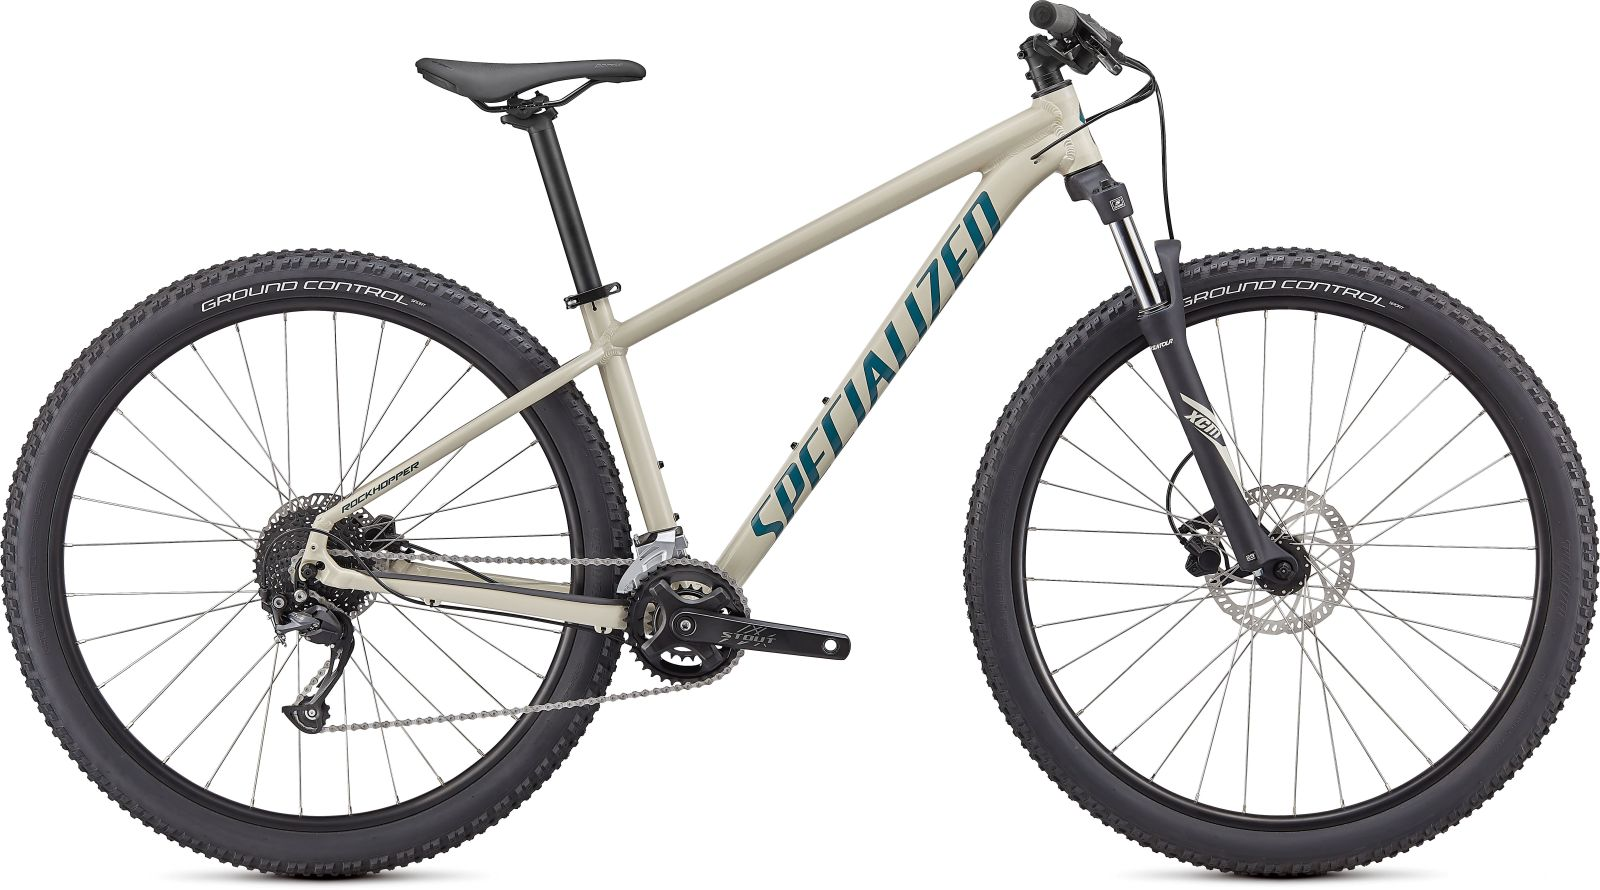 Specialized Rockhopper Sport 29 - Gloss White Mountains/Dusty Turquoise S